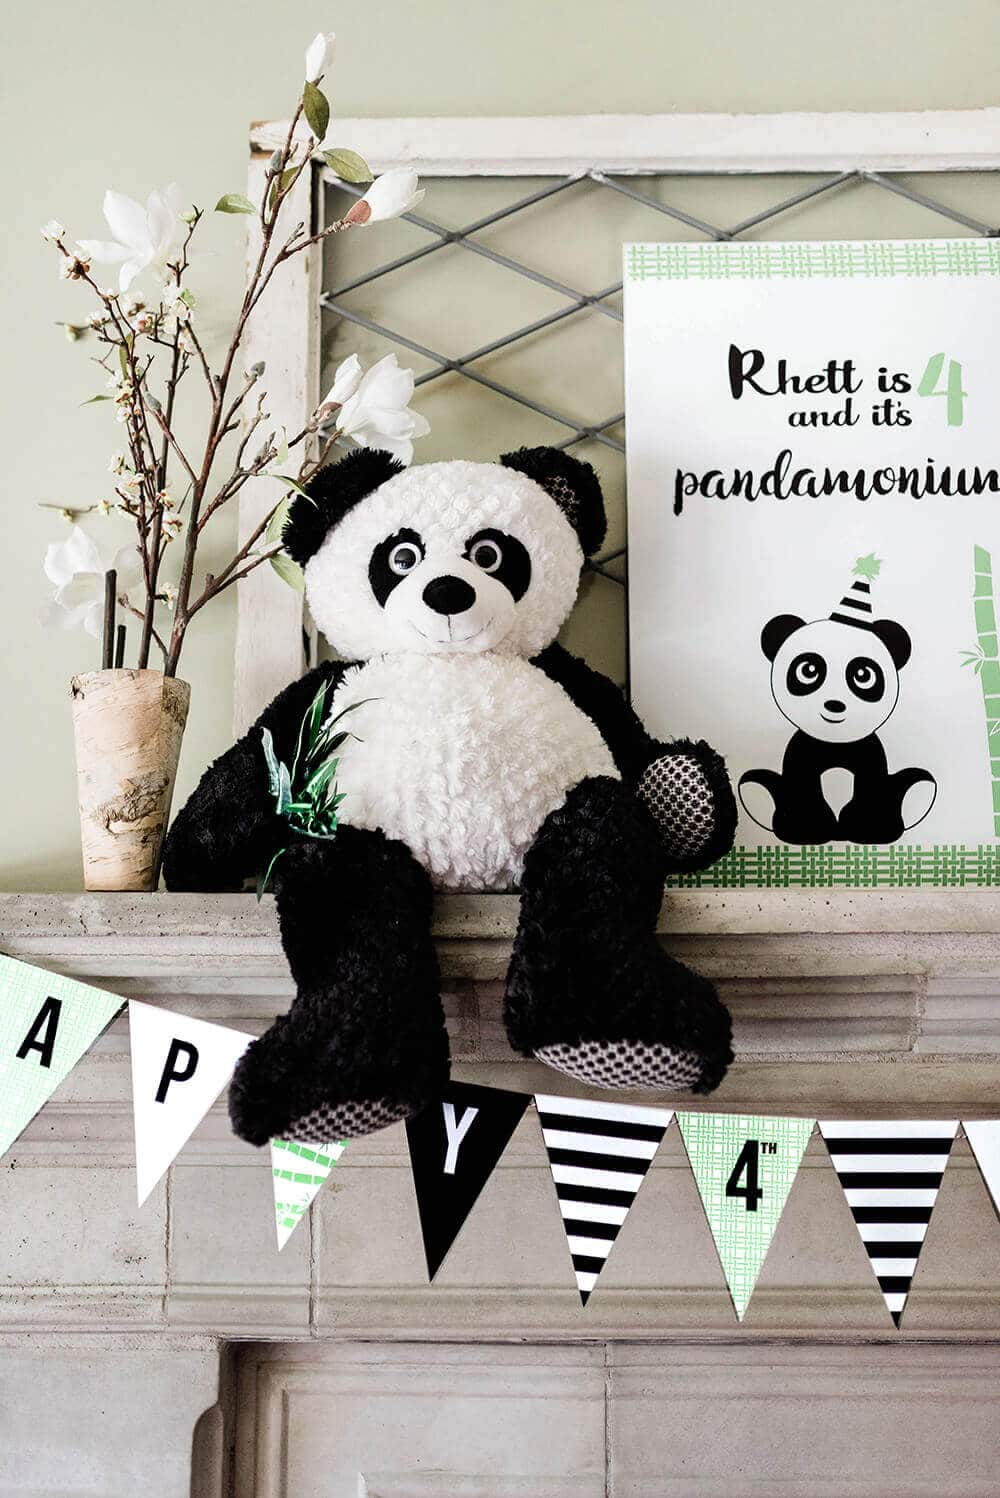 Giant plush panda as decor on mantel for panda party